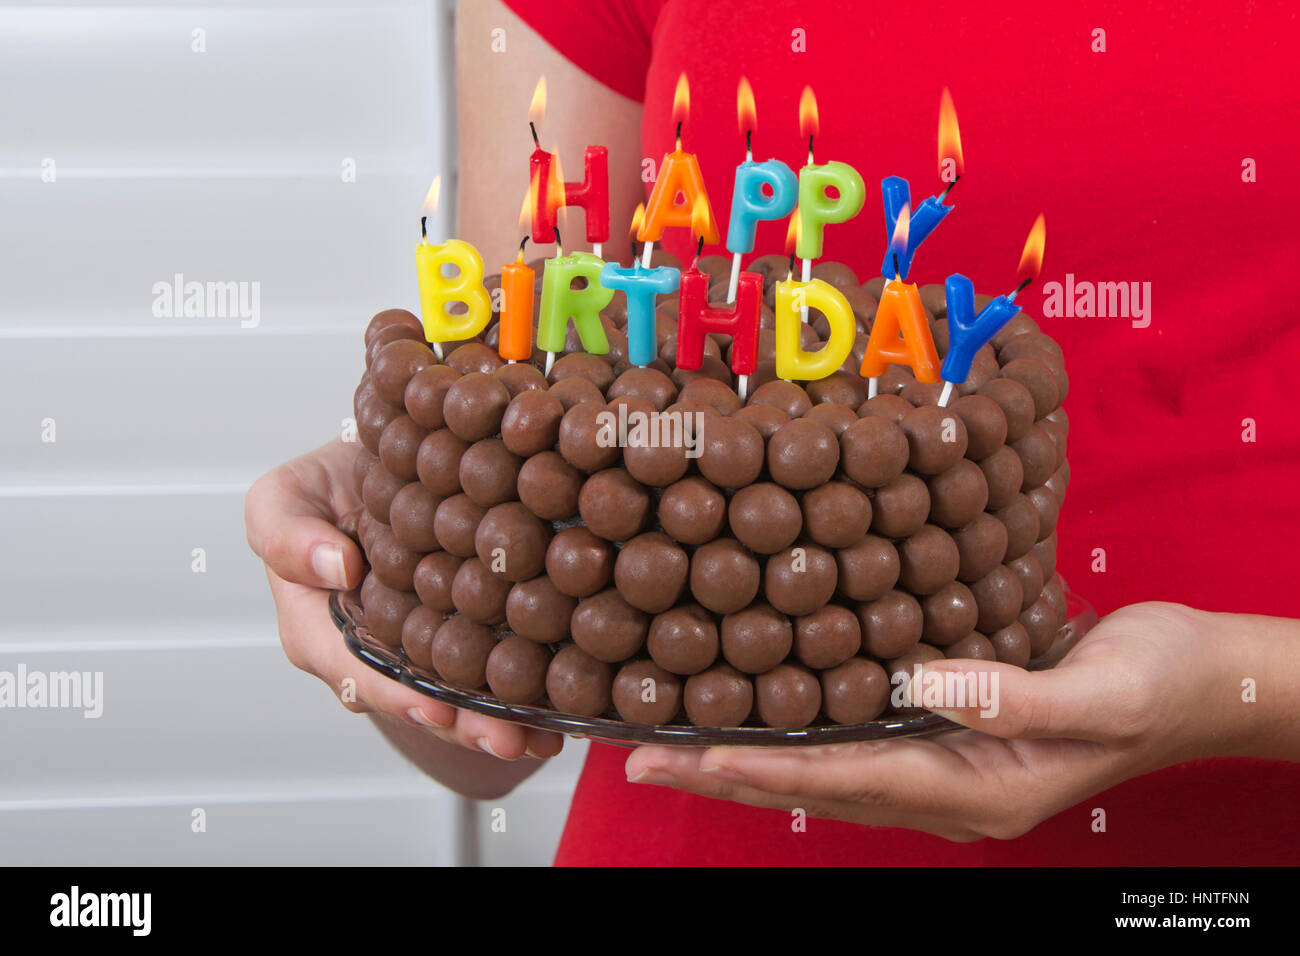 Young girl holding Chocolate Birthday Cake decorated with candy malt